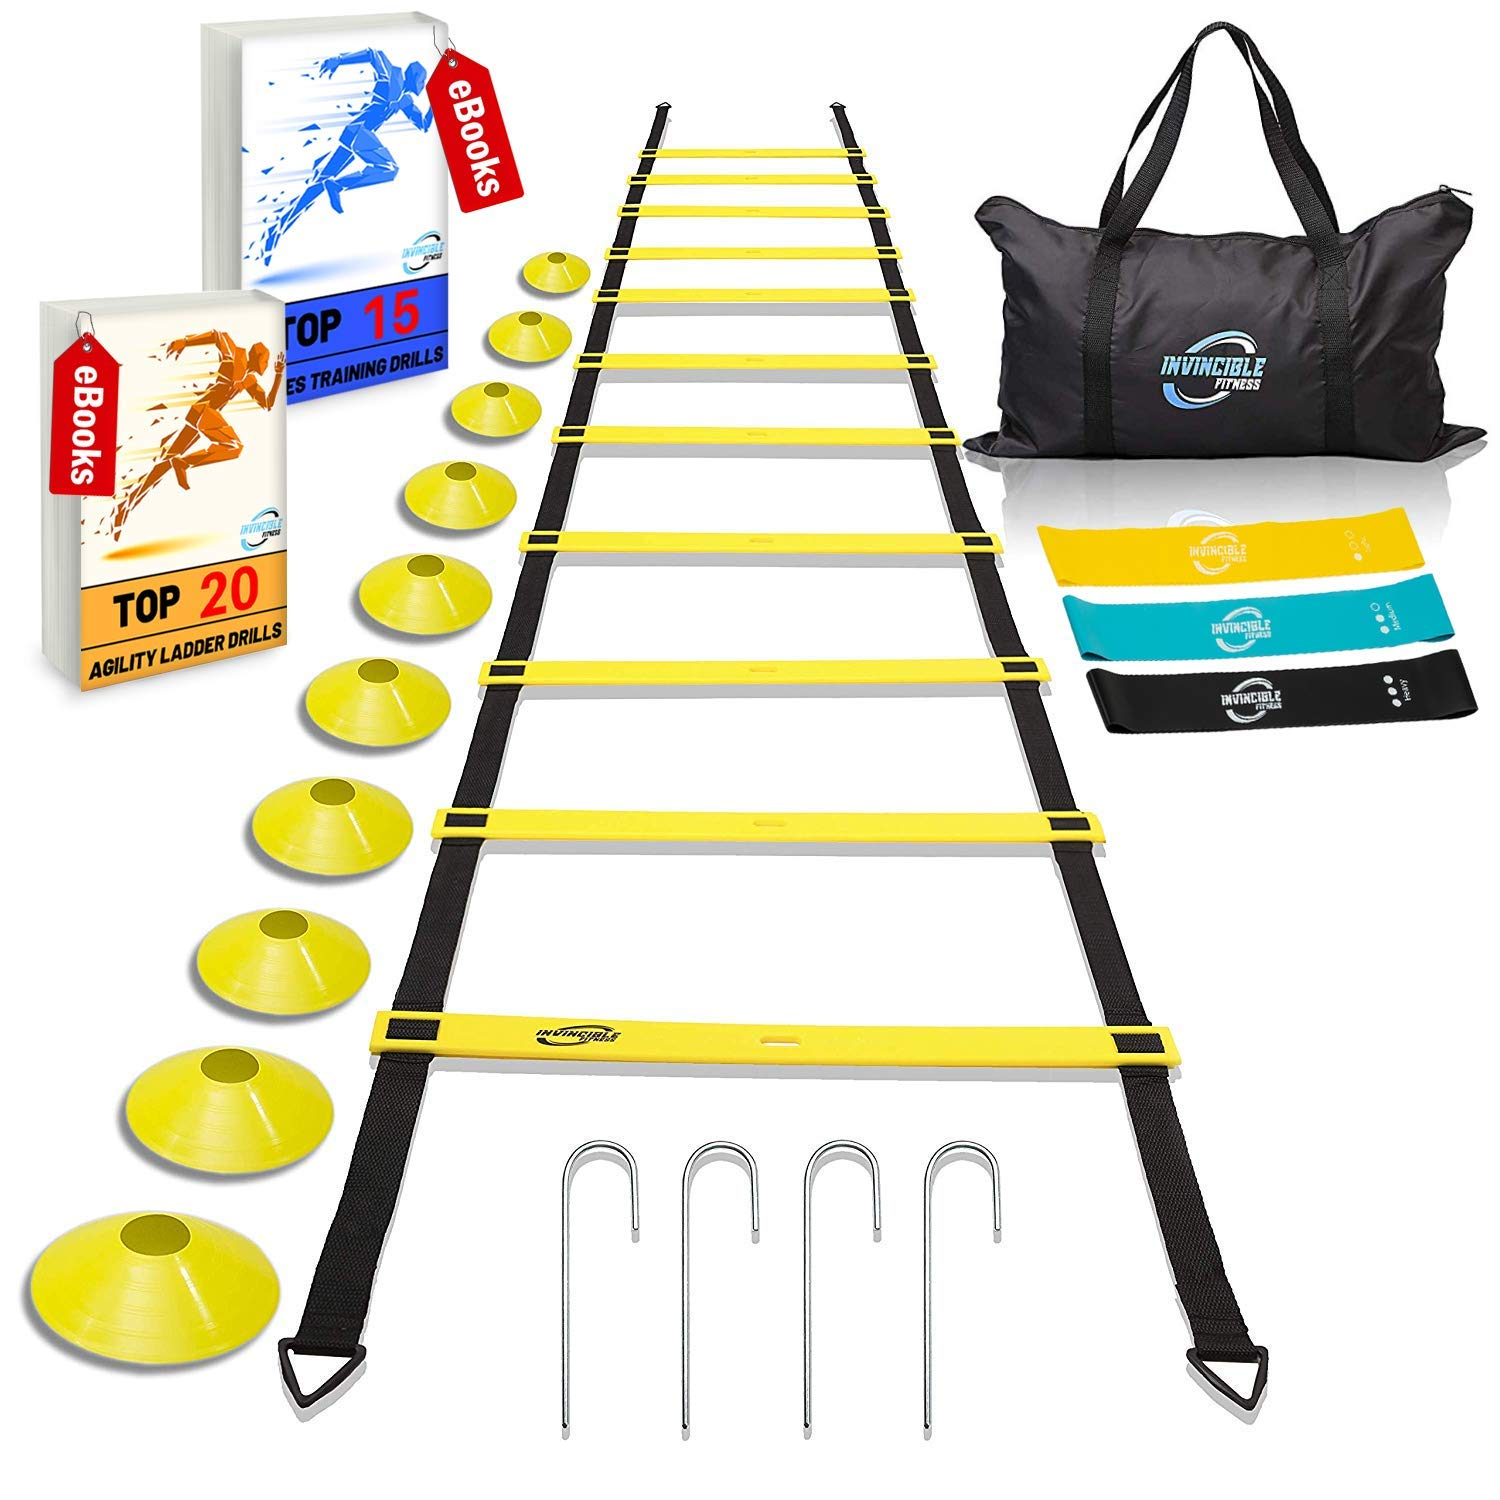 Invincible Fitness Agility Ladder Training Equipment Set, Improves Coordination, Speed, Power and Strength, Includes 10…